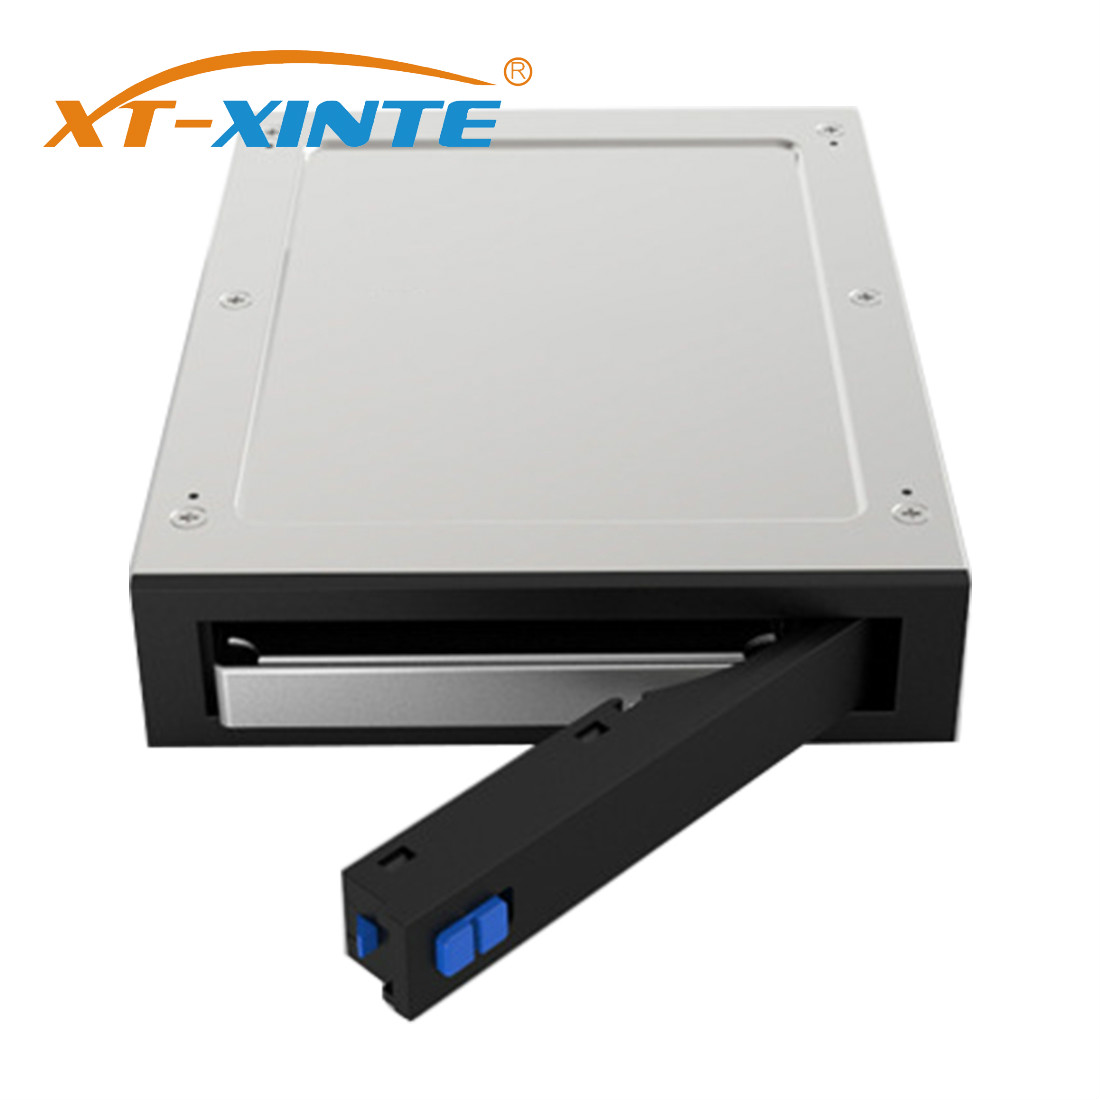 XT-XINTE Hard Drive Enclosure 2.5 Inch Internal Floppy Bay SATA III Tray-Less Mobile Rack For 3TB 7~12.5mm 2.5